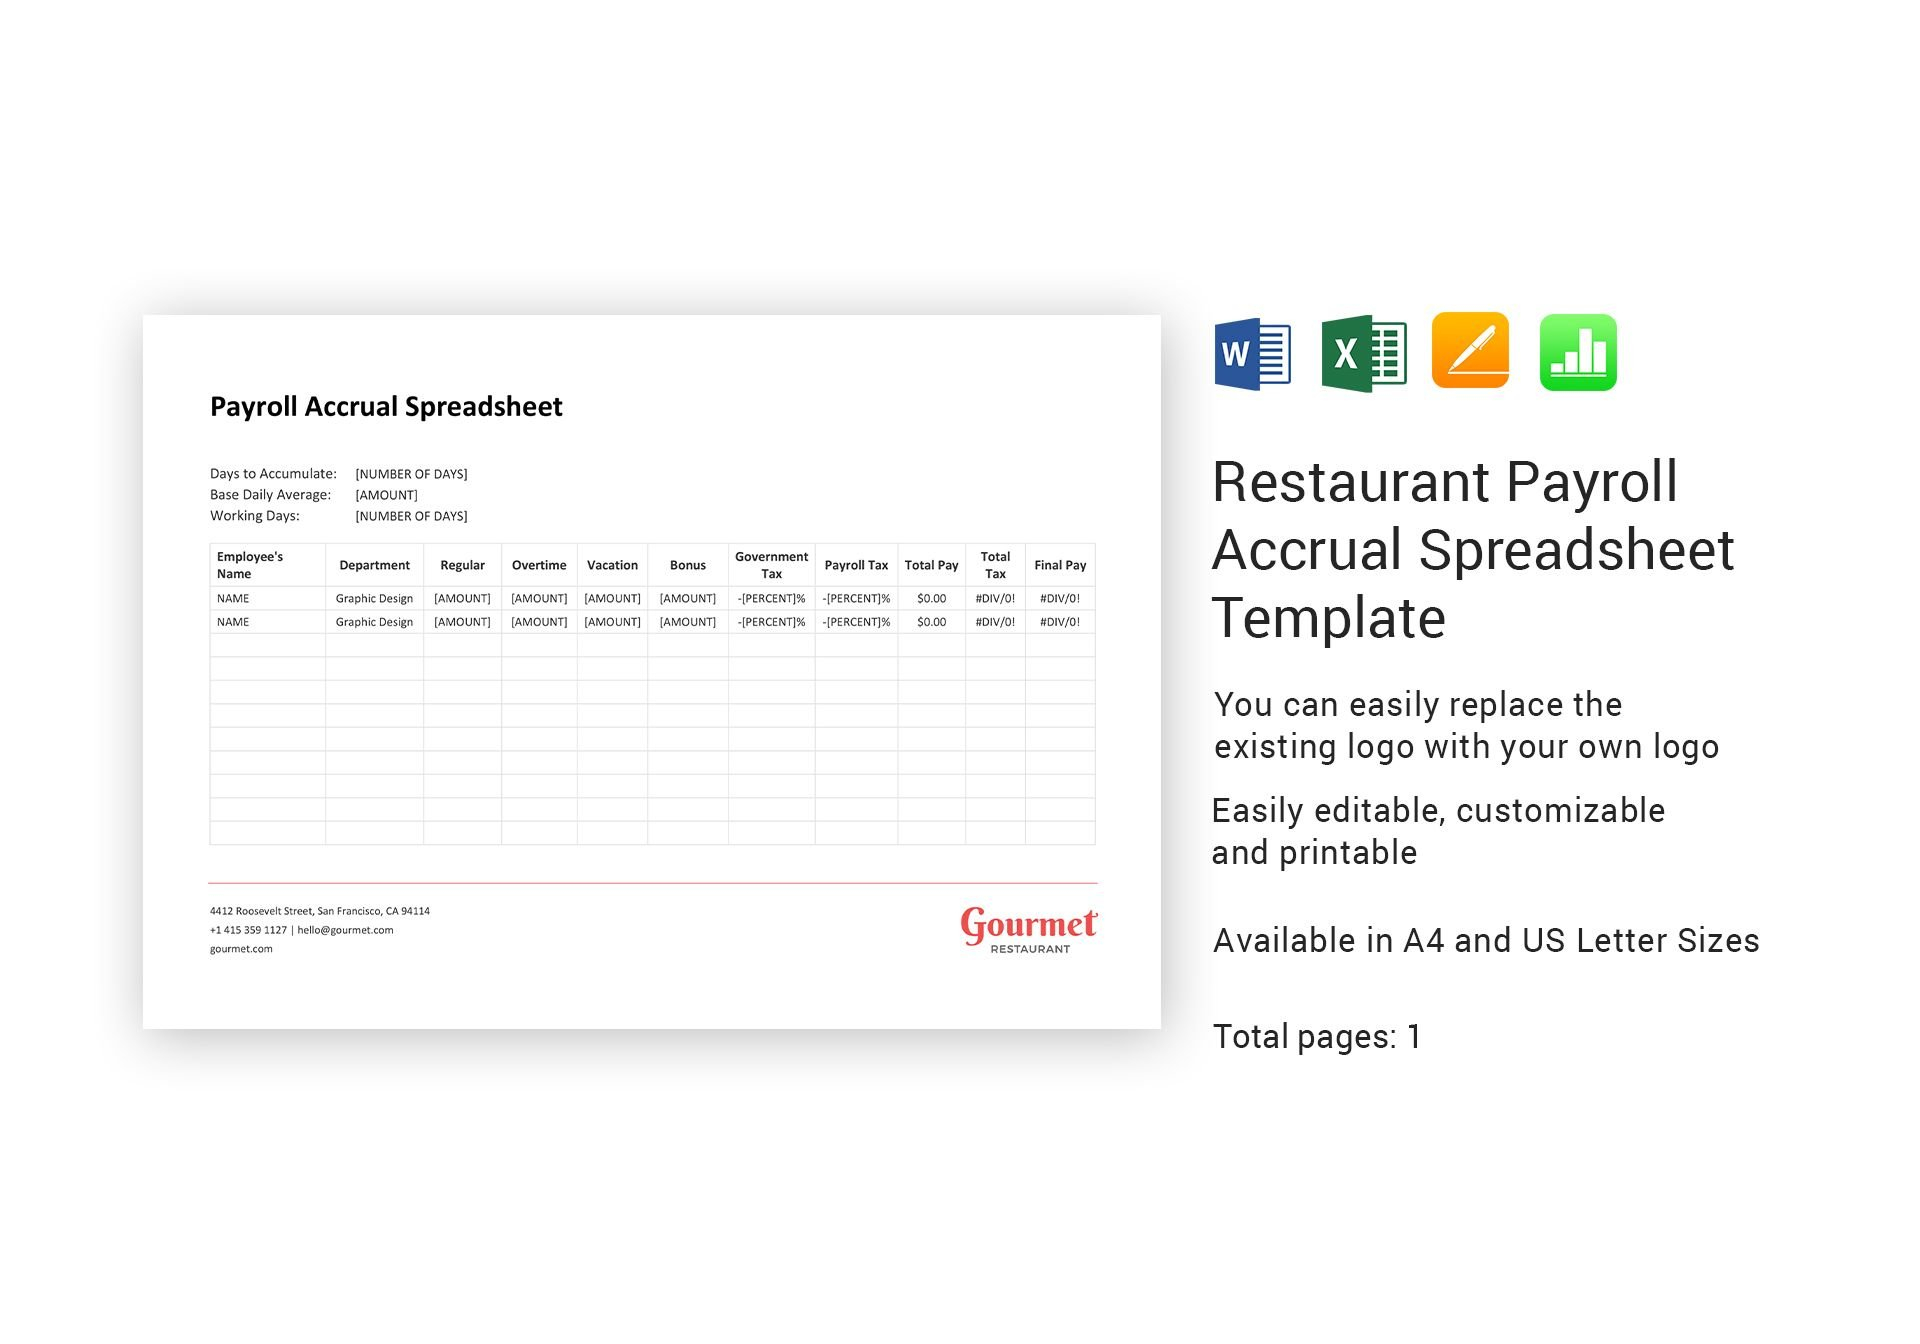 Restaurant Payroll Accrual Spreadsheet Template In Word, Excel ... Throughout Payroll Accrual Spreadsheet Template